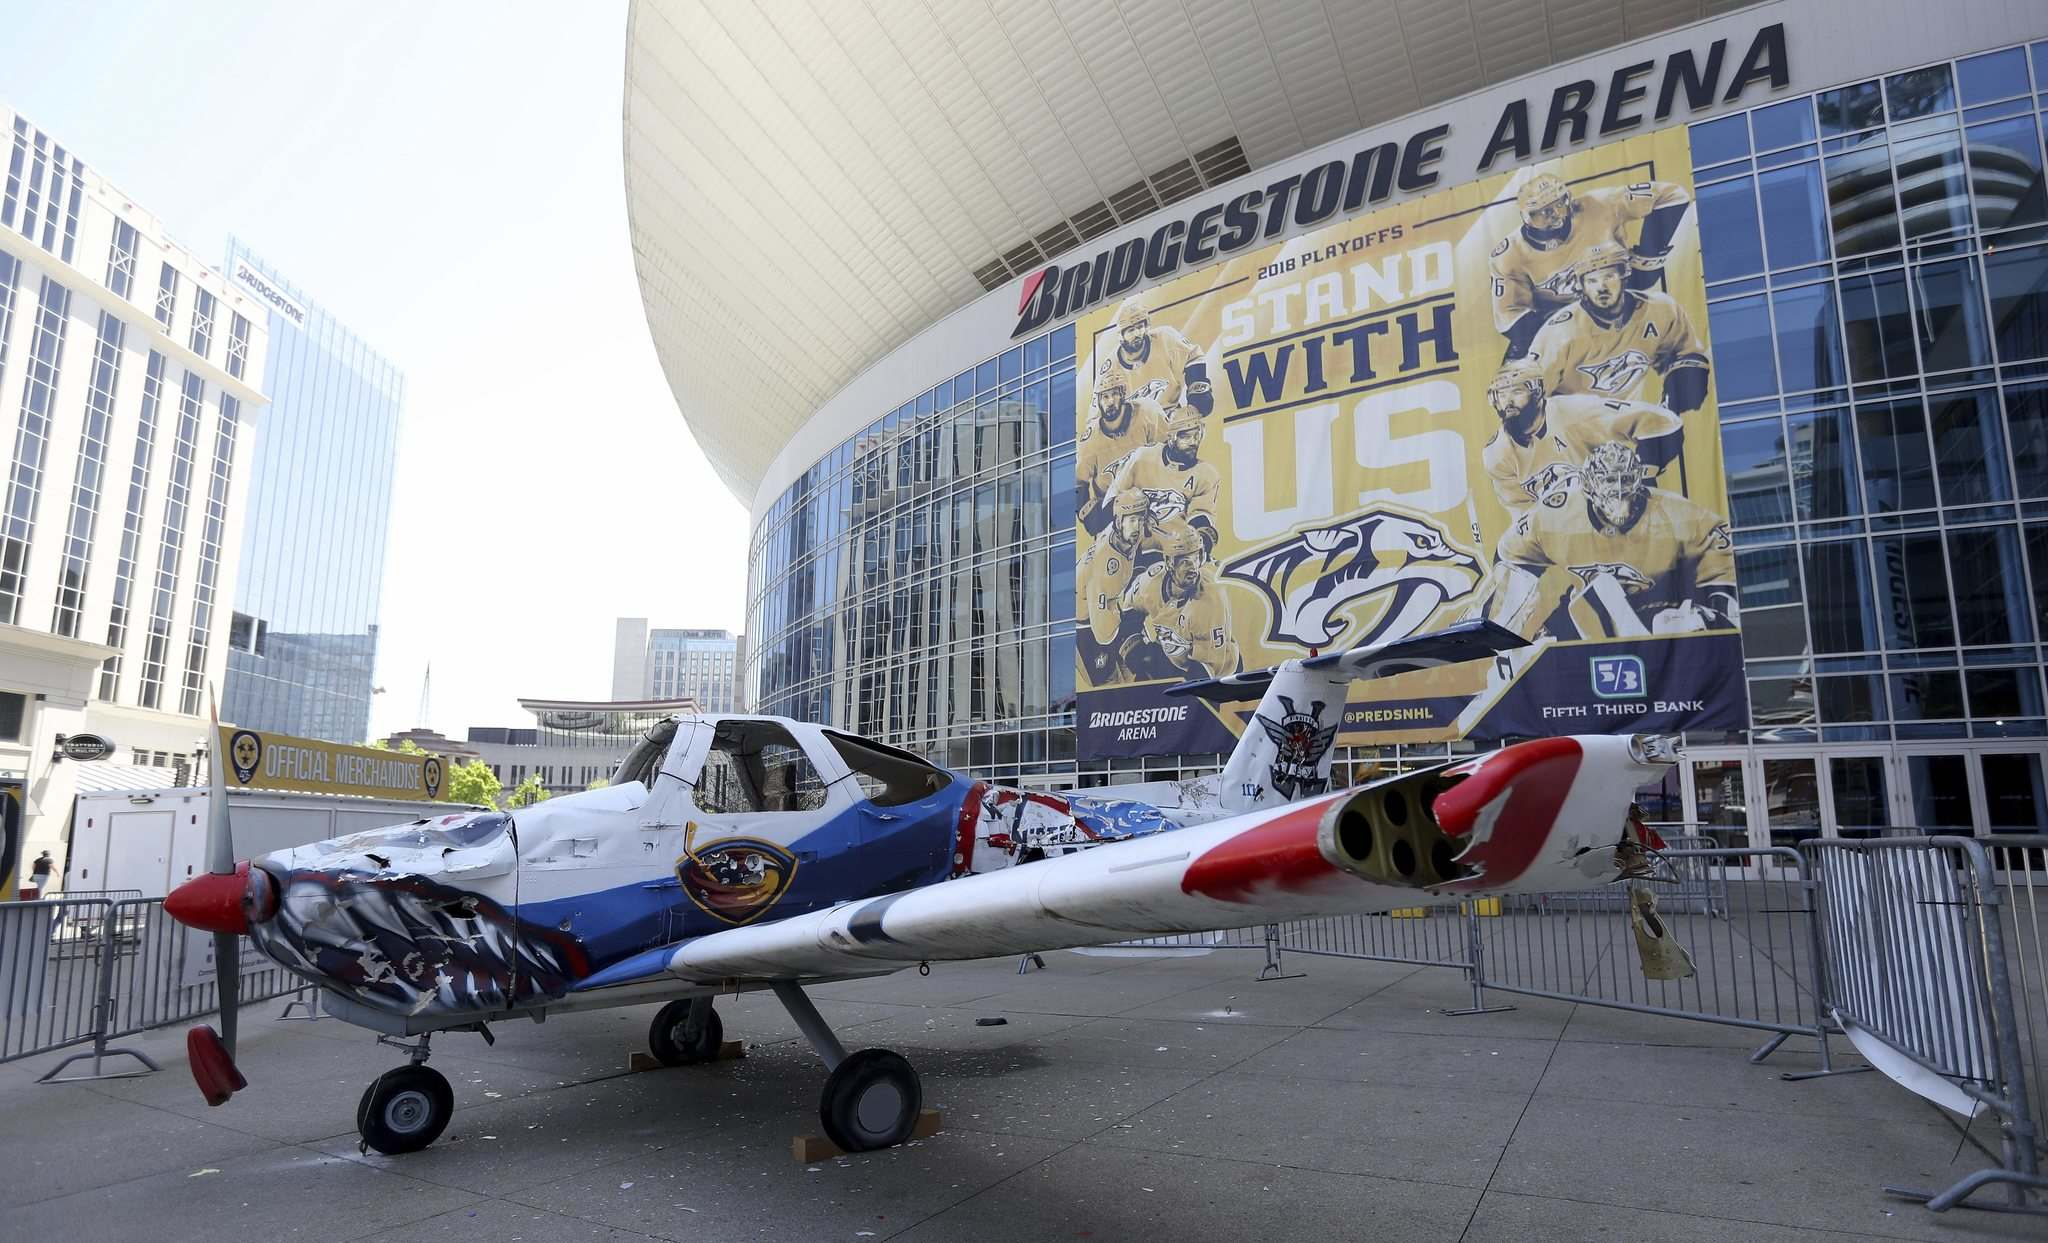 TREVOR HAGAN  WINNIPEG FREE PRESSThe Winnipeg Jets&#39 plane outside Bridgestone Arena in Nashville TN Saturday